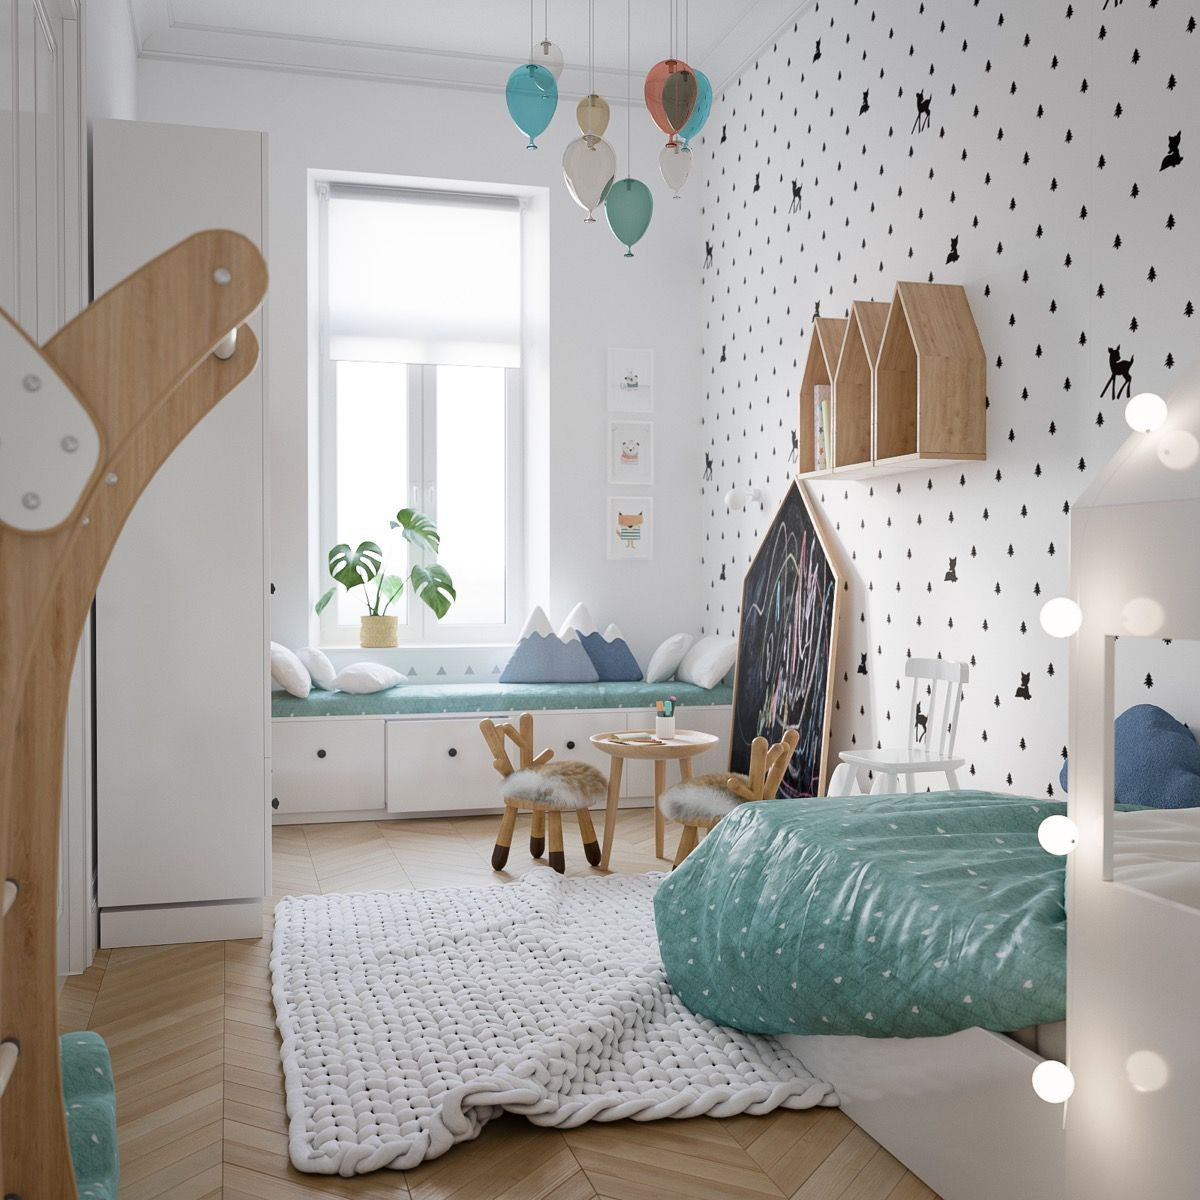 Stylish Bedrooms Designed For Kids Scandinavian Kids Rooms Kid Room Decor Minimalist Kids Room